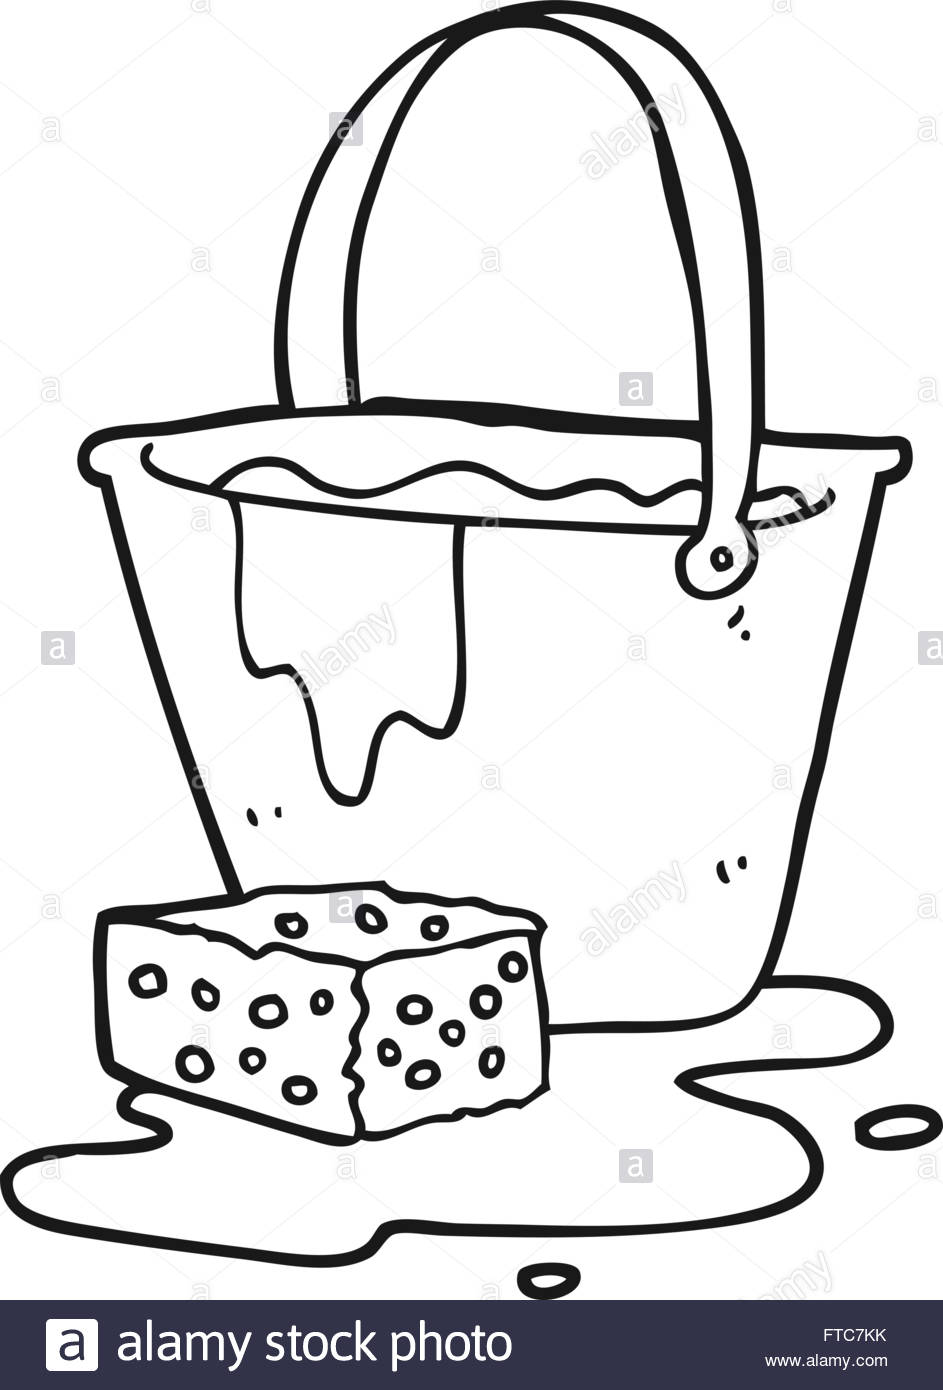 Freehand Drawn Black And White Cartoon Bucket Of Soapy Water Stock.